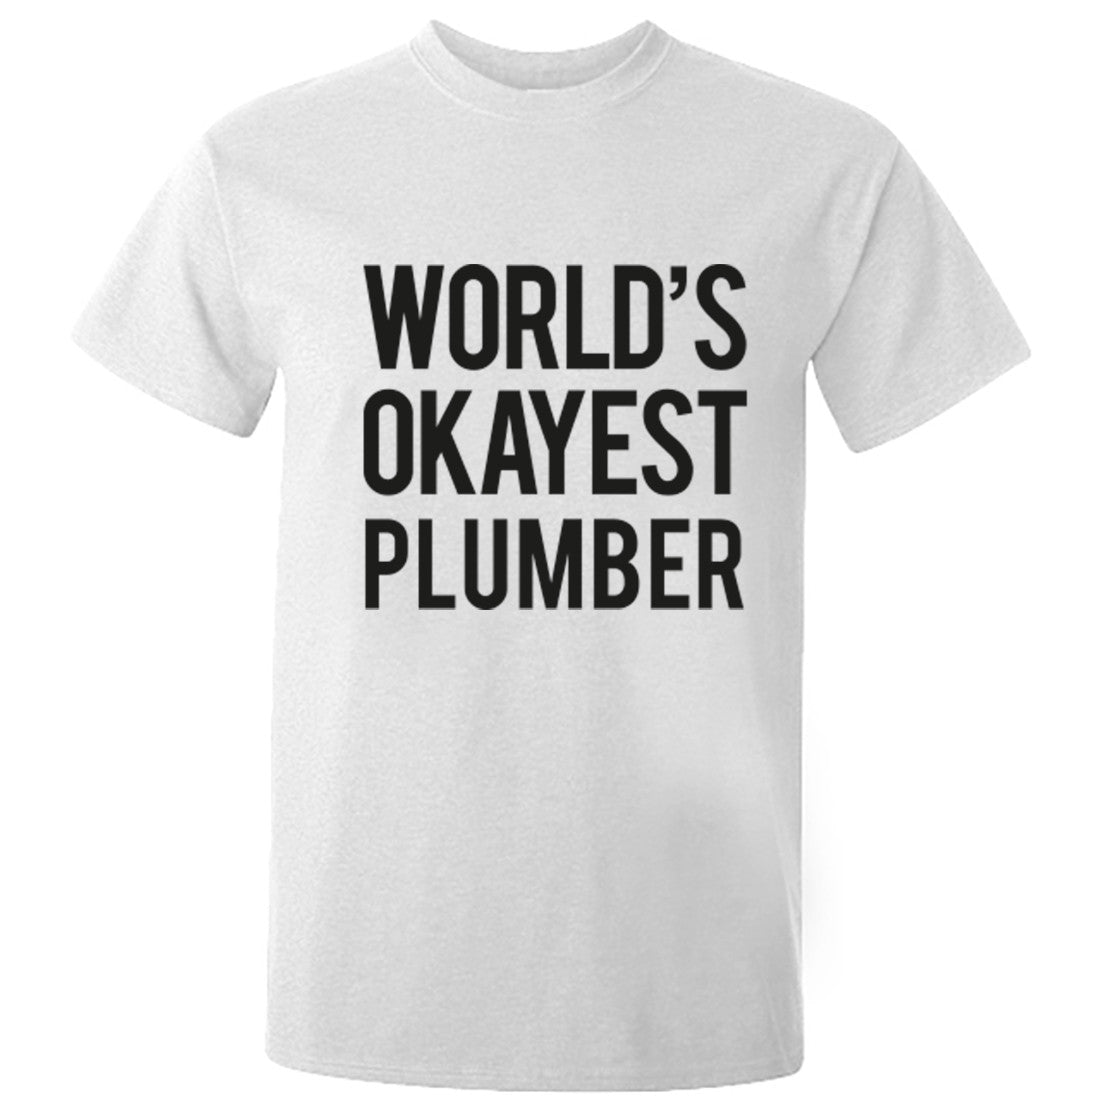 Worlds Okayest Plumber Unisex Fit T-Shirt K0508 - Illustrated Identity Ltd.